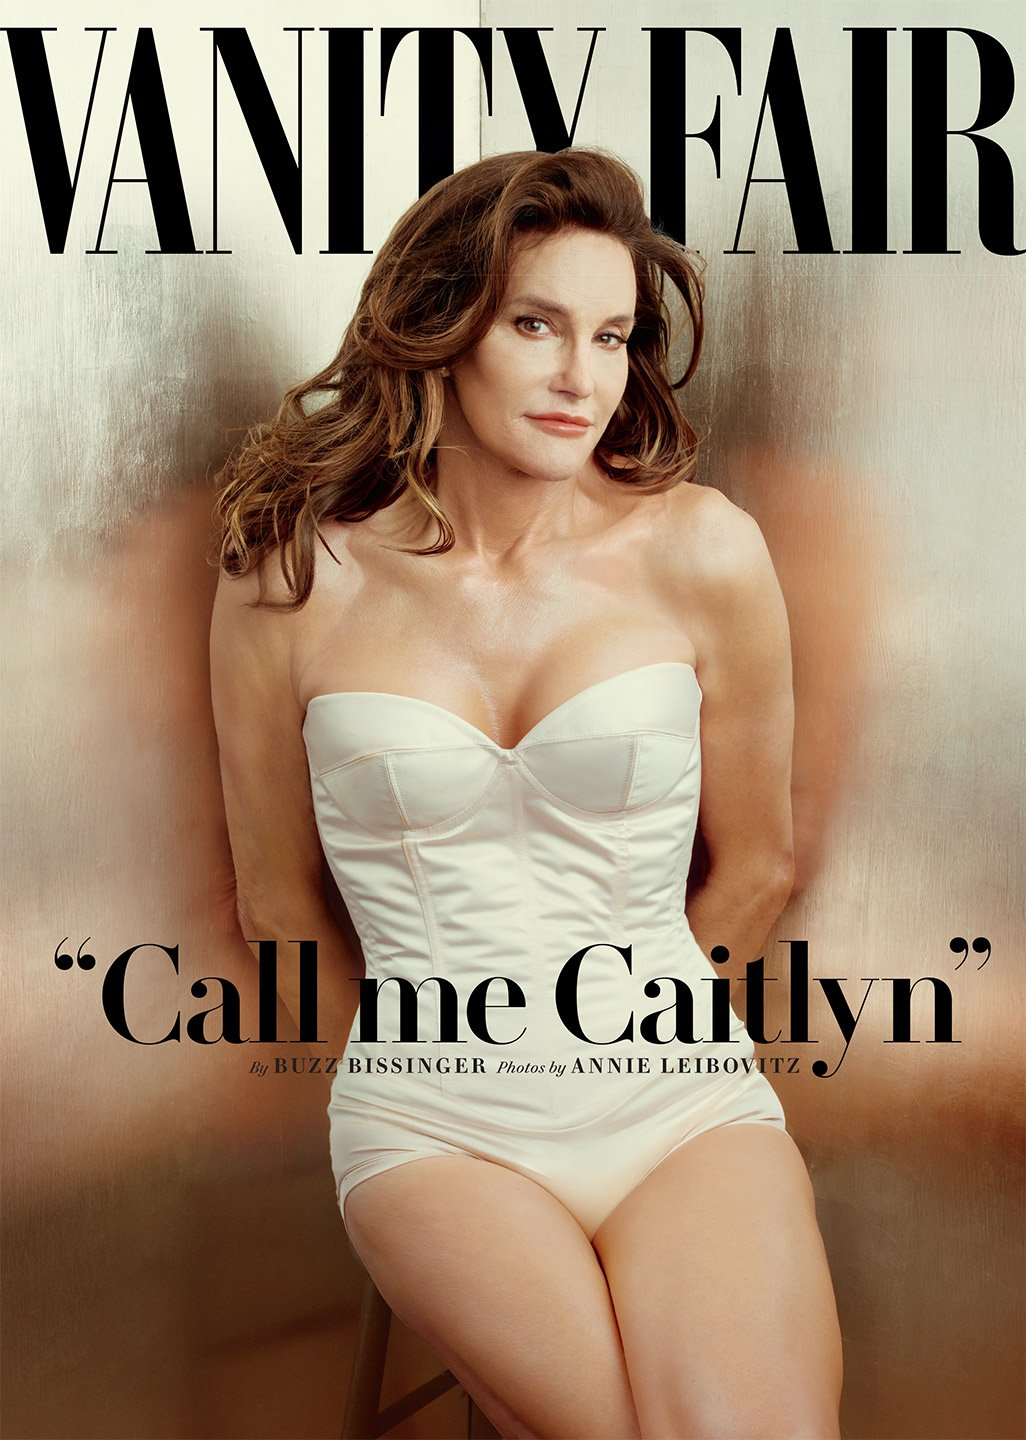 Caitlyn Jenner, Formerly Bruce, on the cover of Vanity Fair/Photo: Annie Leibovitz